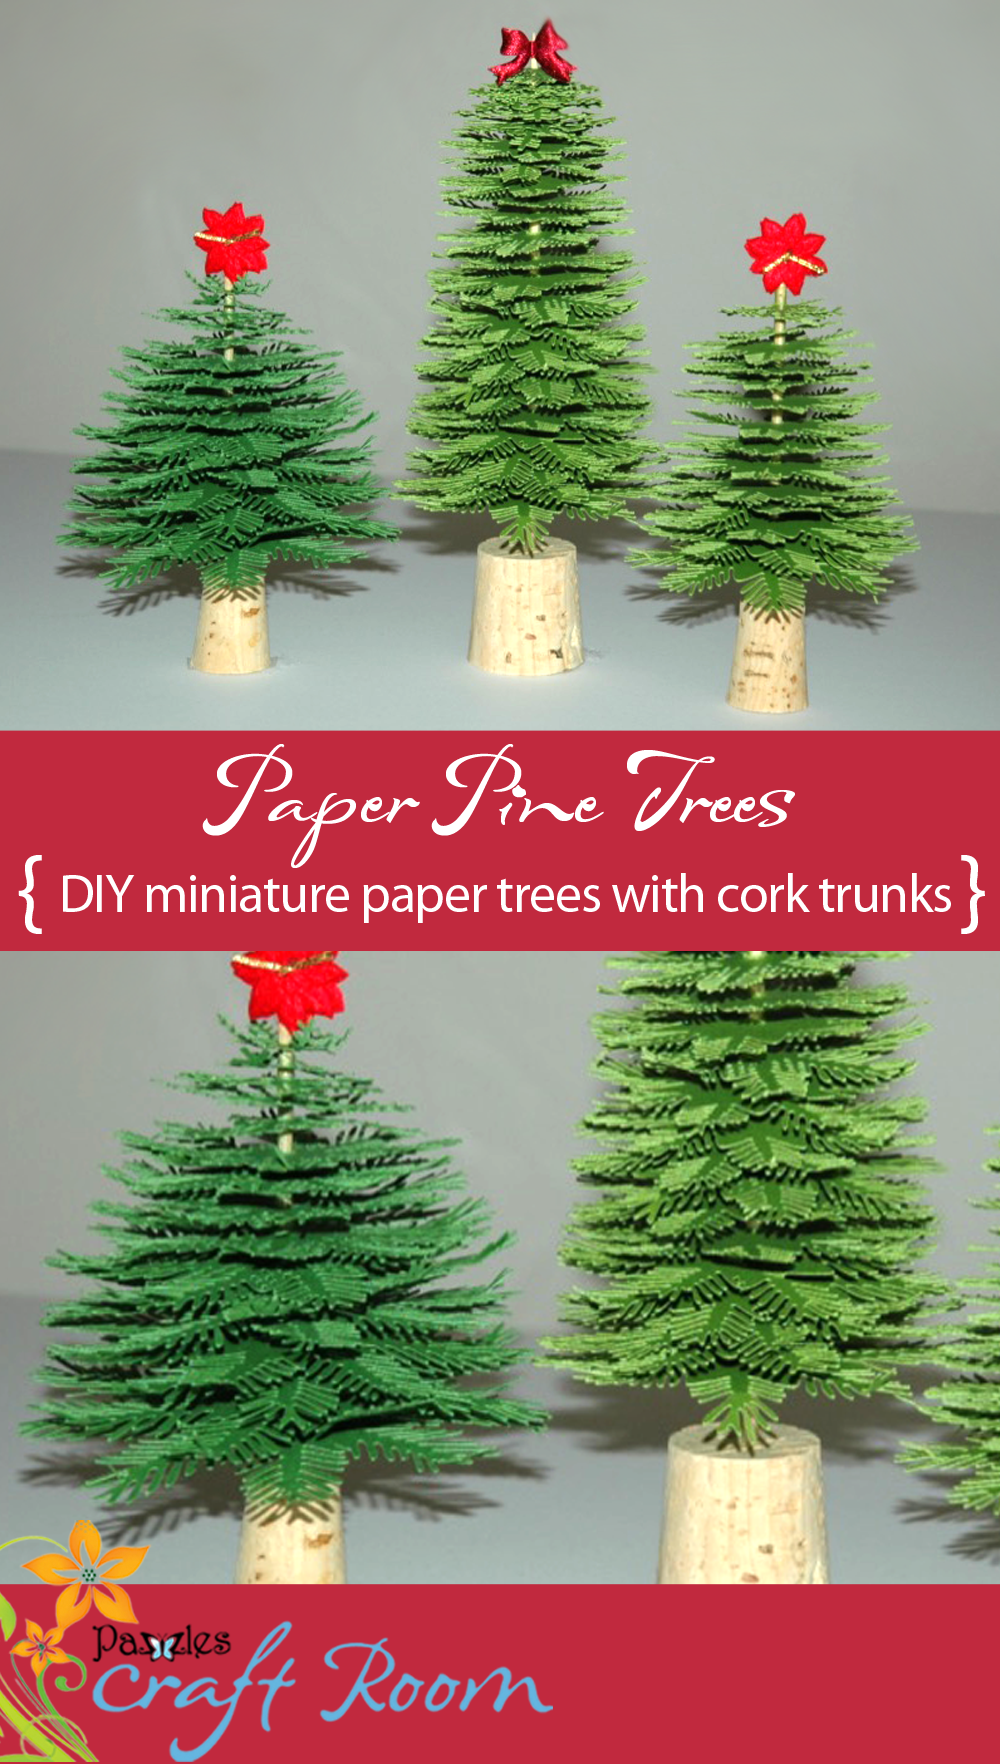 Miniature Pine Trees With Images Christmas Crafts Diy Outdoor Christmas Decorations Christmas Crafts